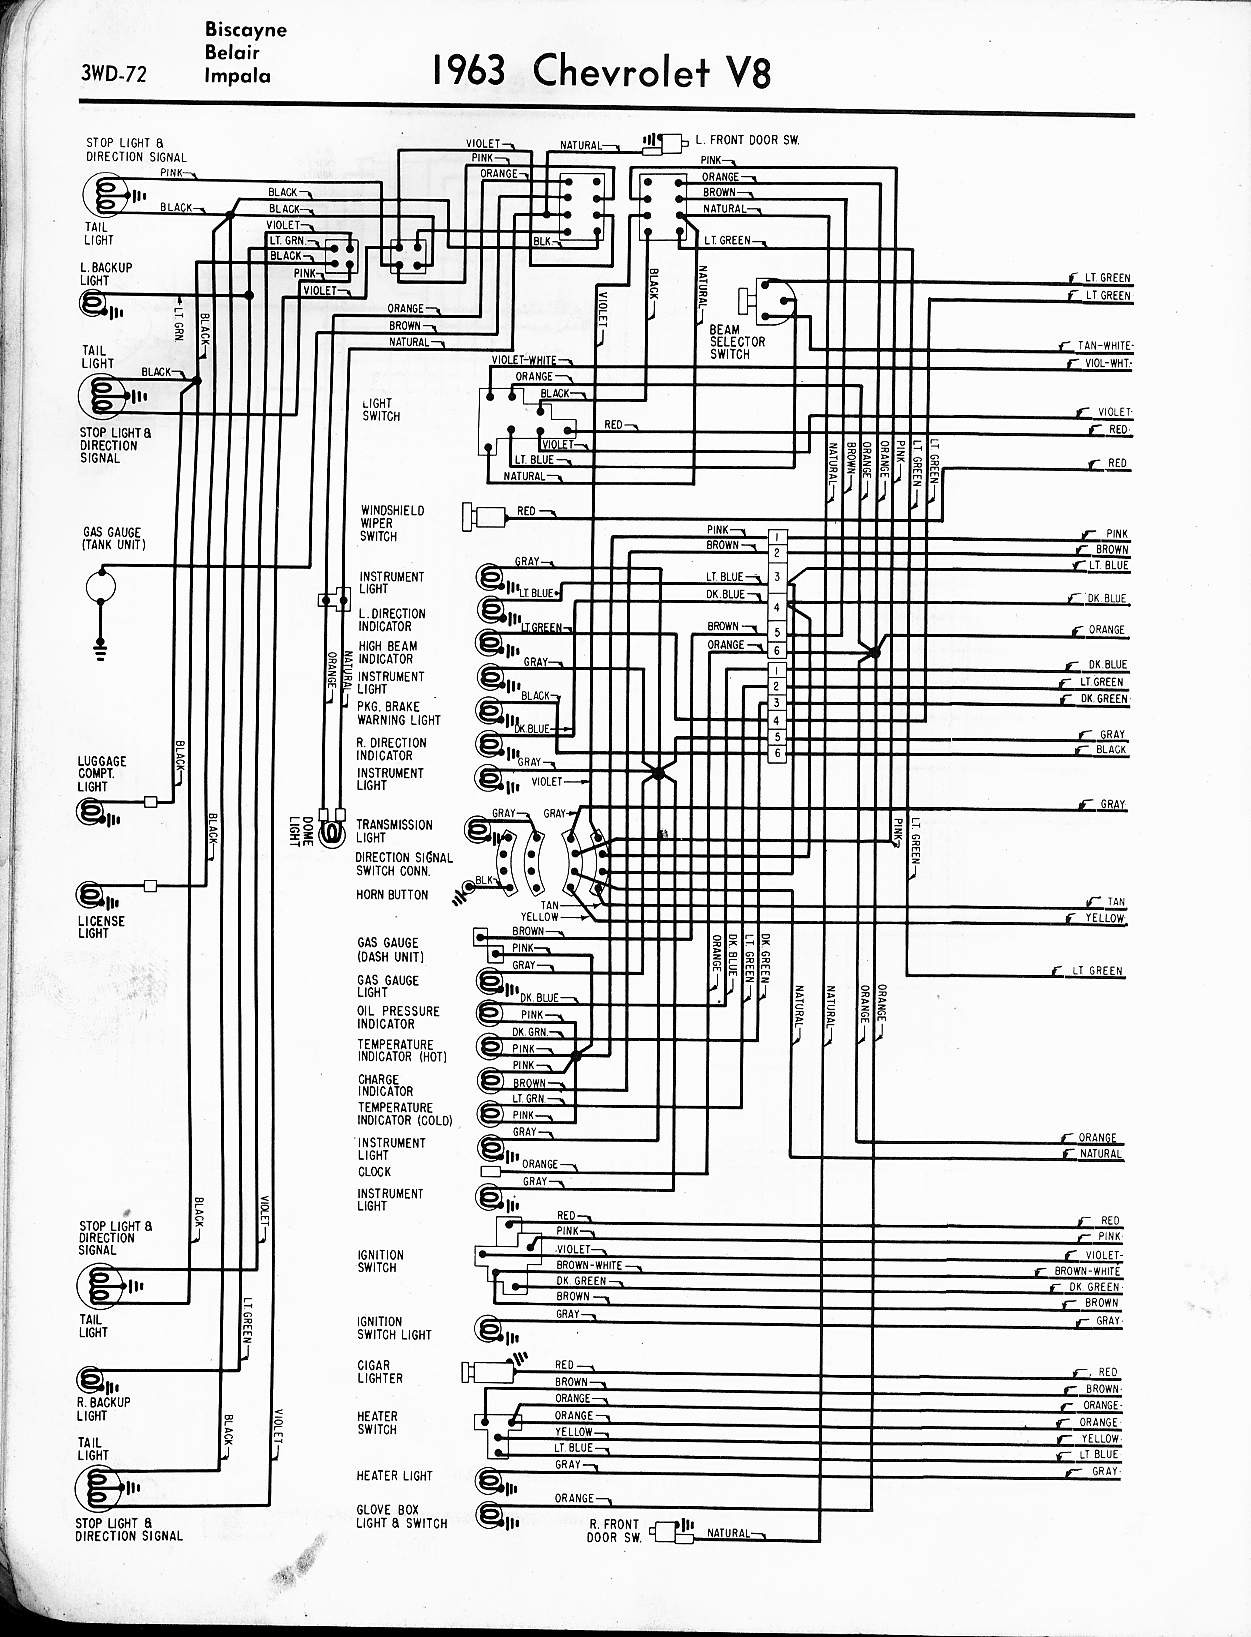 1964 Chevy Coil Wiring Diagrams Library 72 Midget Diagram 2002 Impala Chevrolet Sedan Ss Harness Of